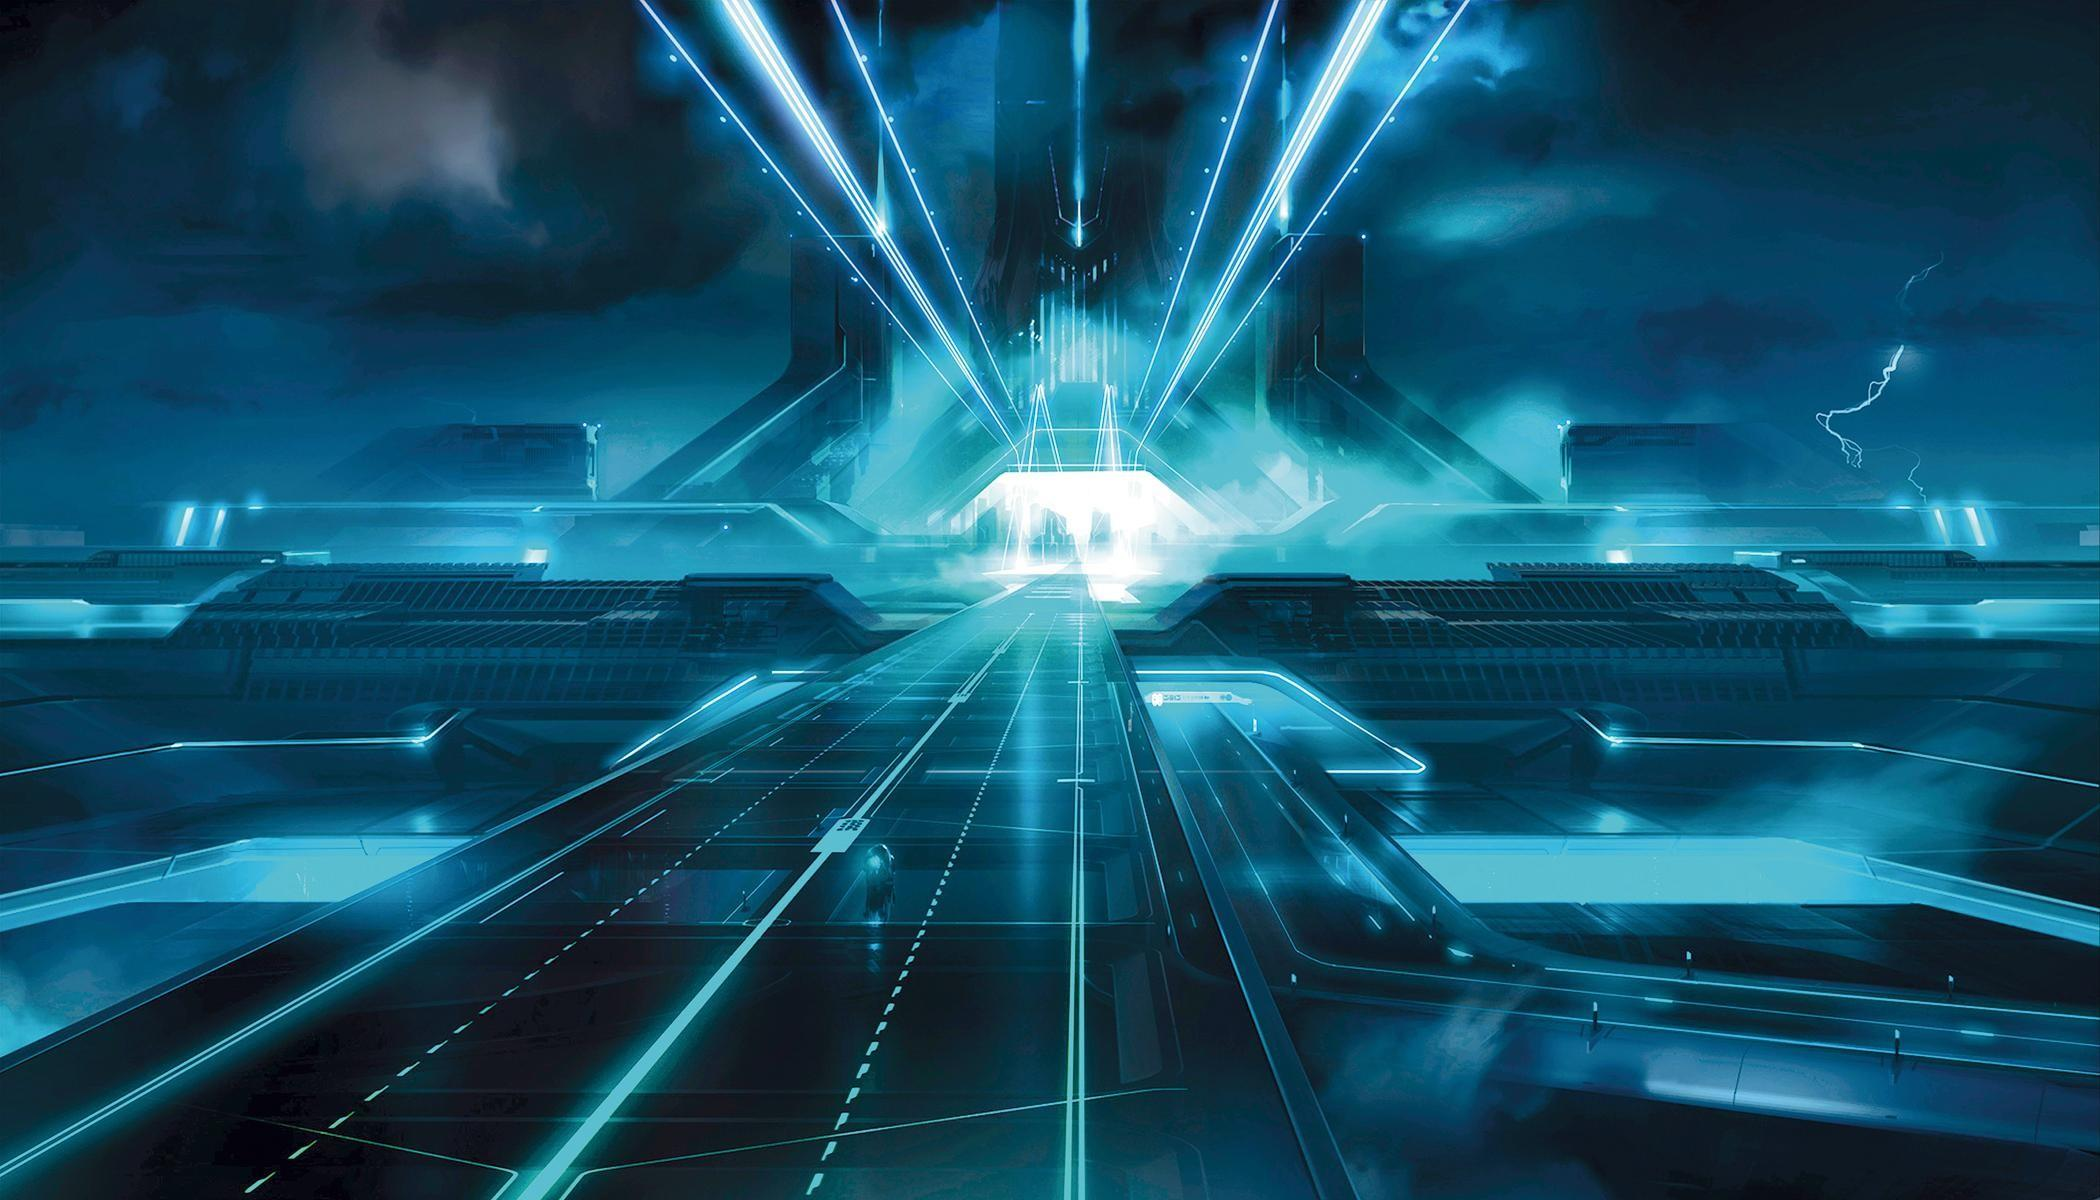 York Tron Legacy Wall Mural Interiordecorating